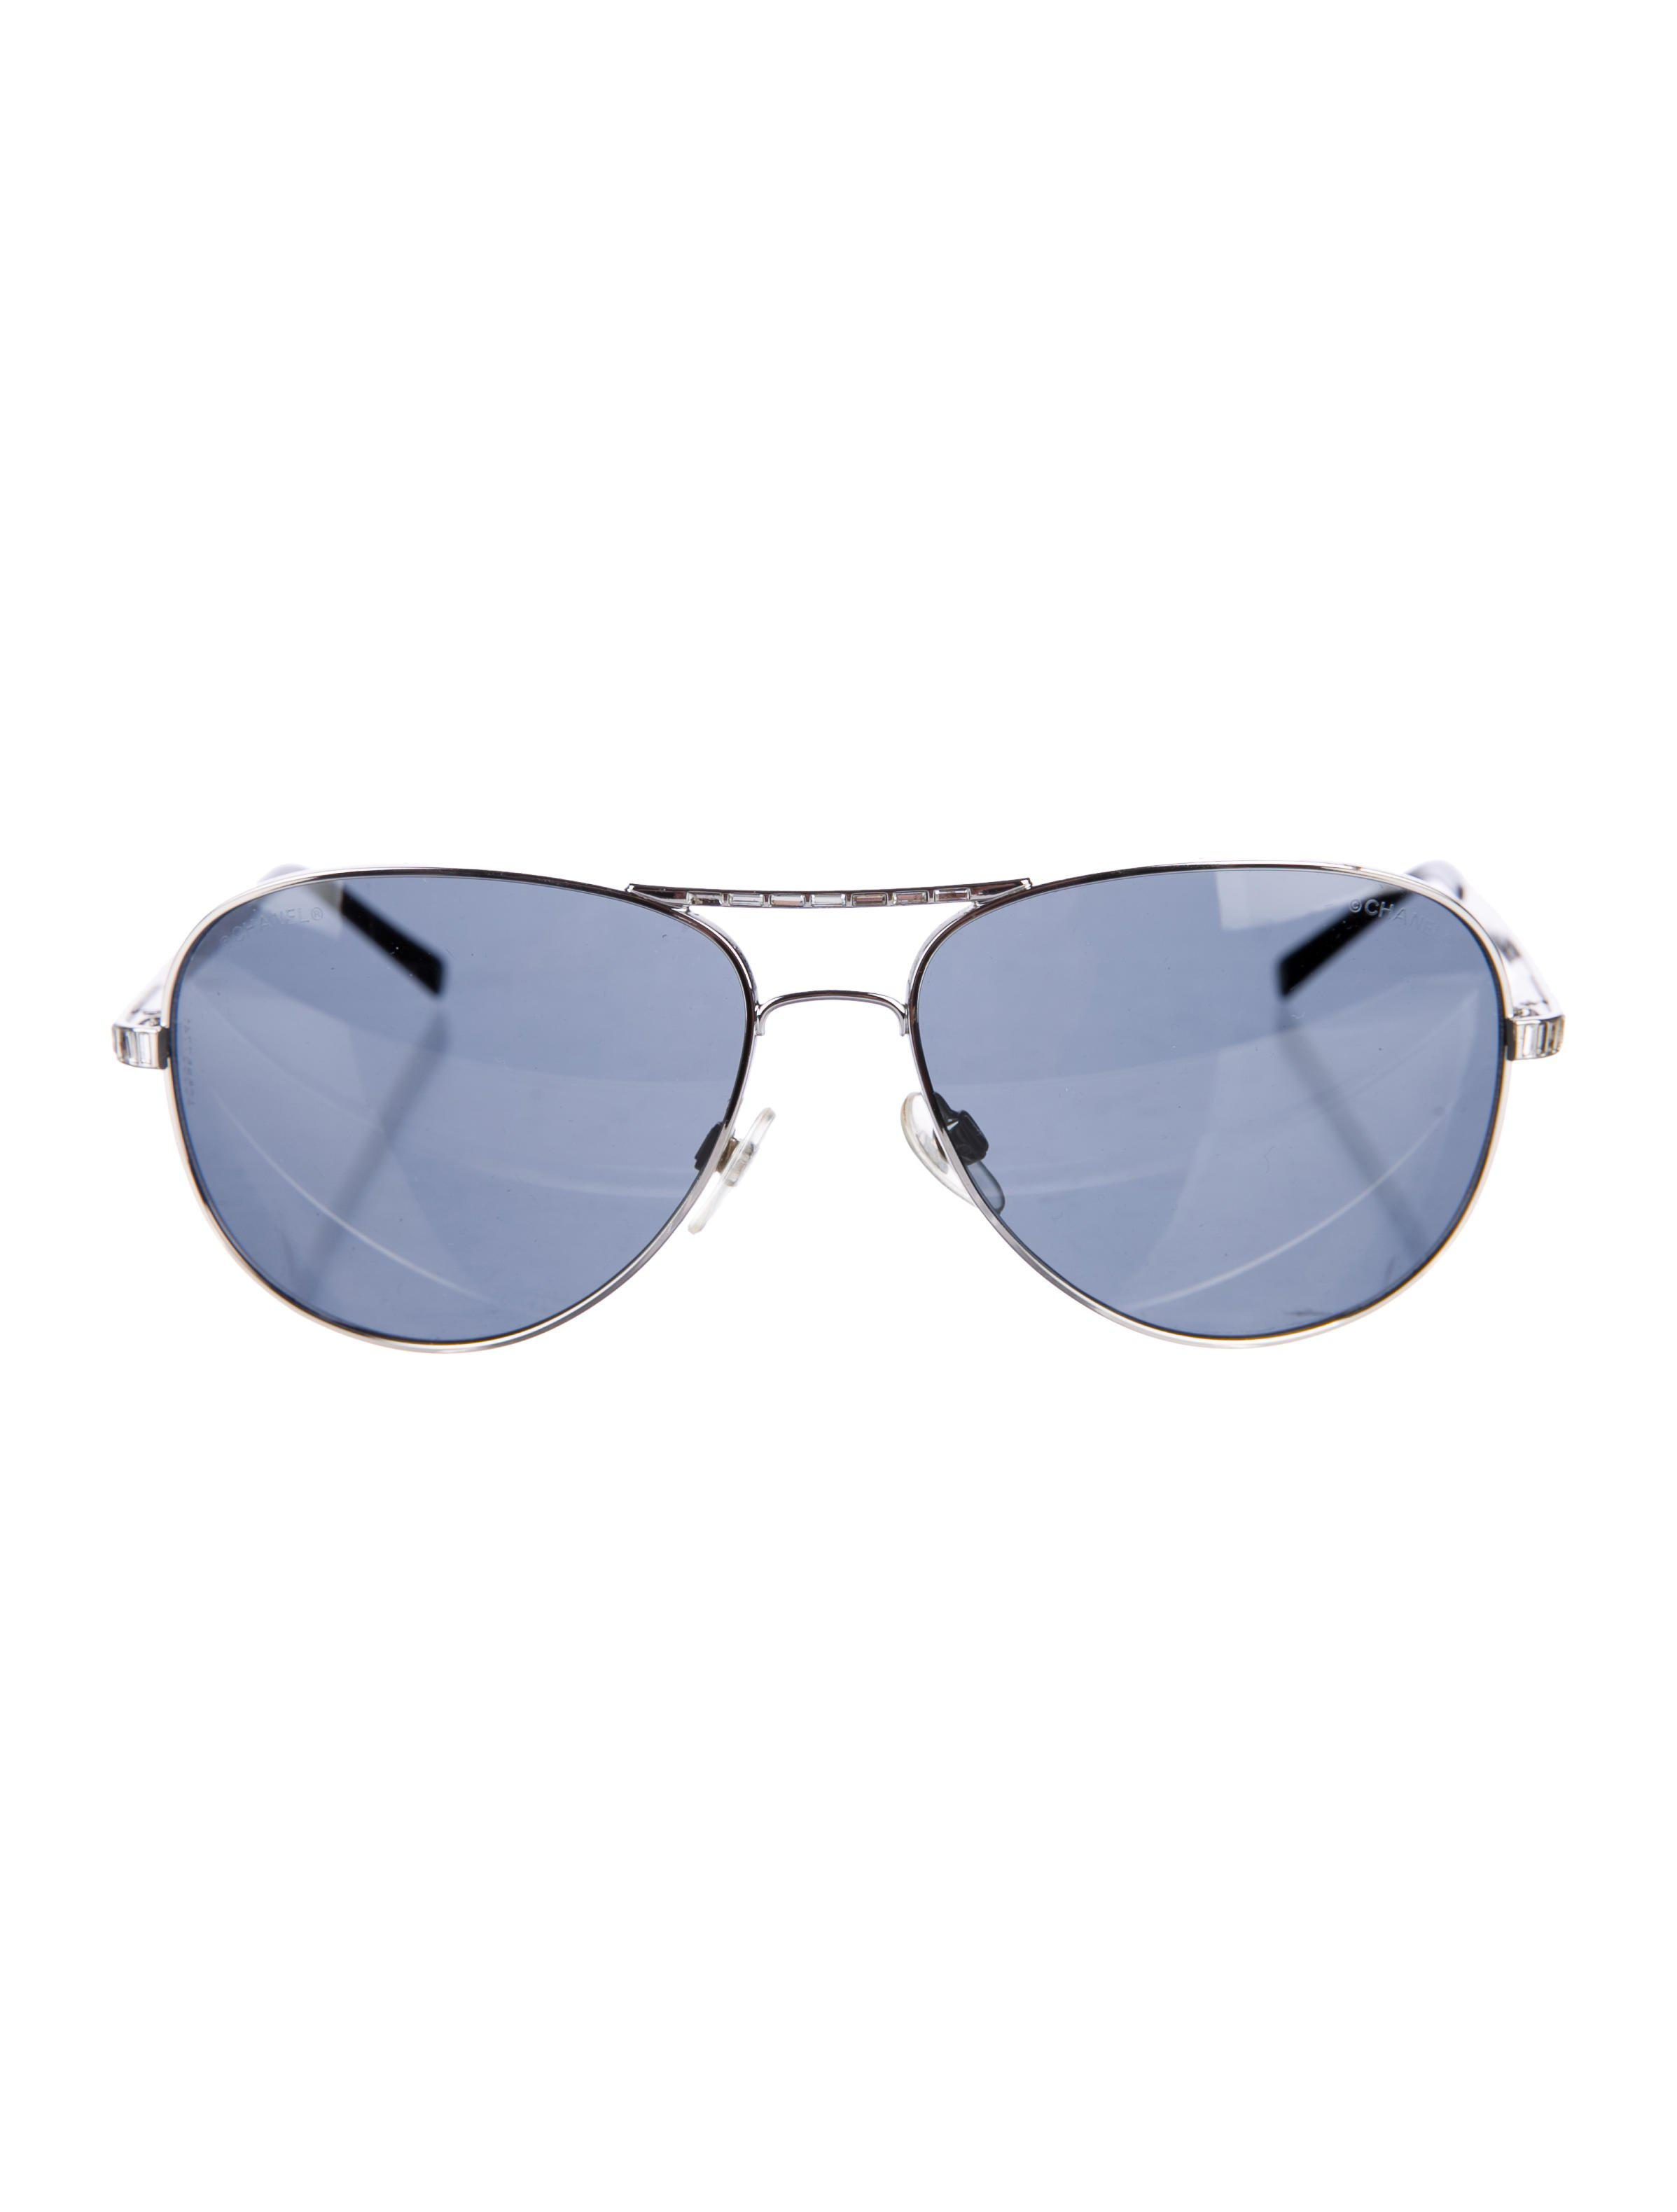 Chanel Quilted Aviator Sunglasses Shabooms